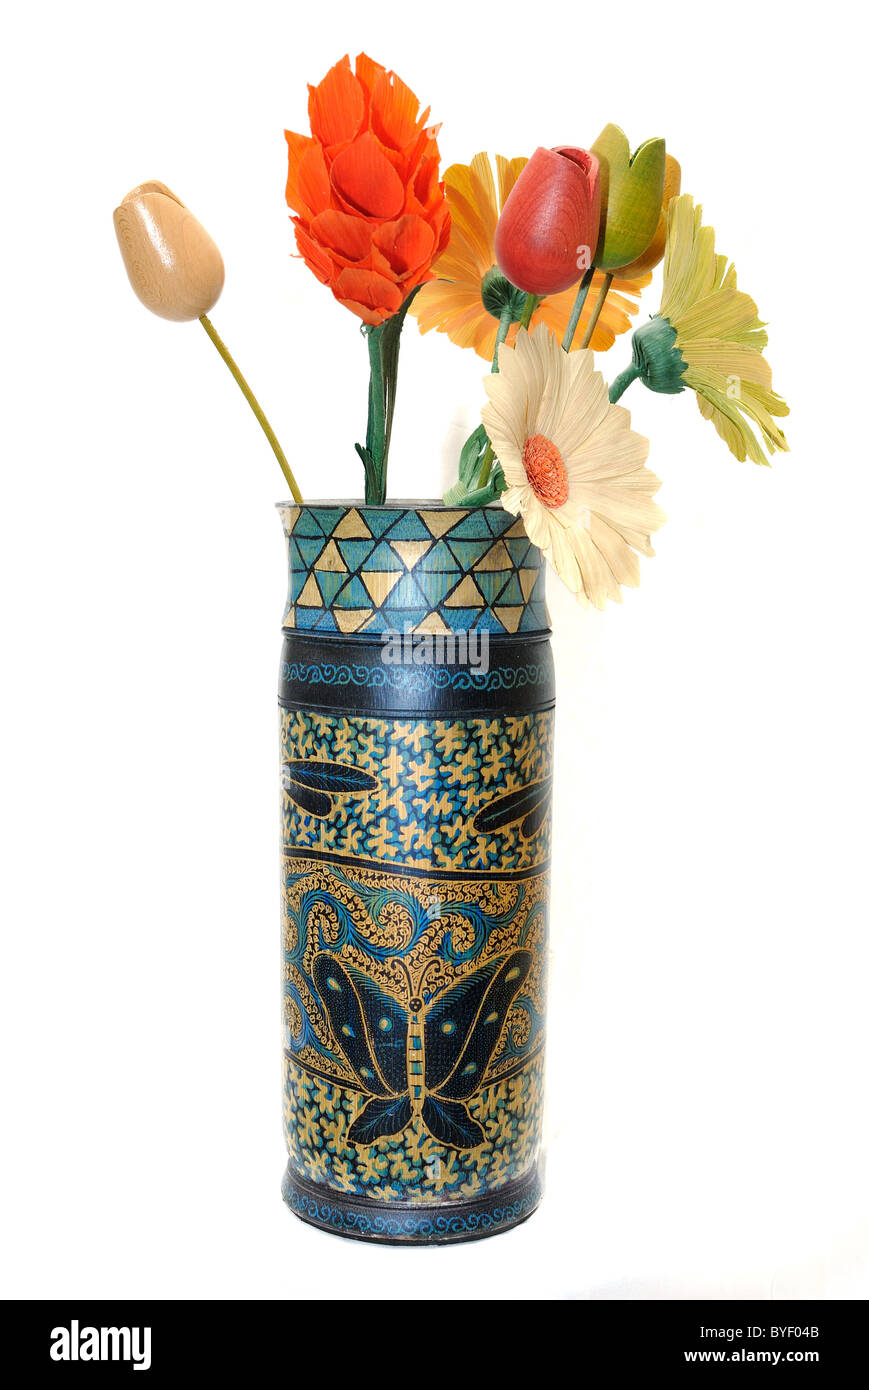 ornae wooden vase with wooden flowers for decoration. Isolated on white. - Stock Image